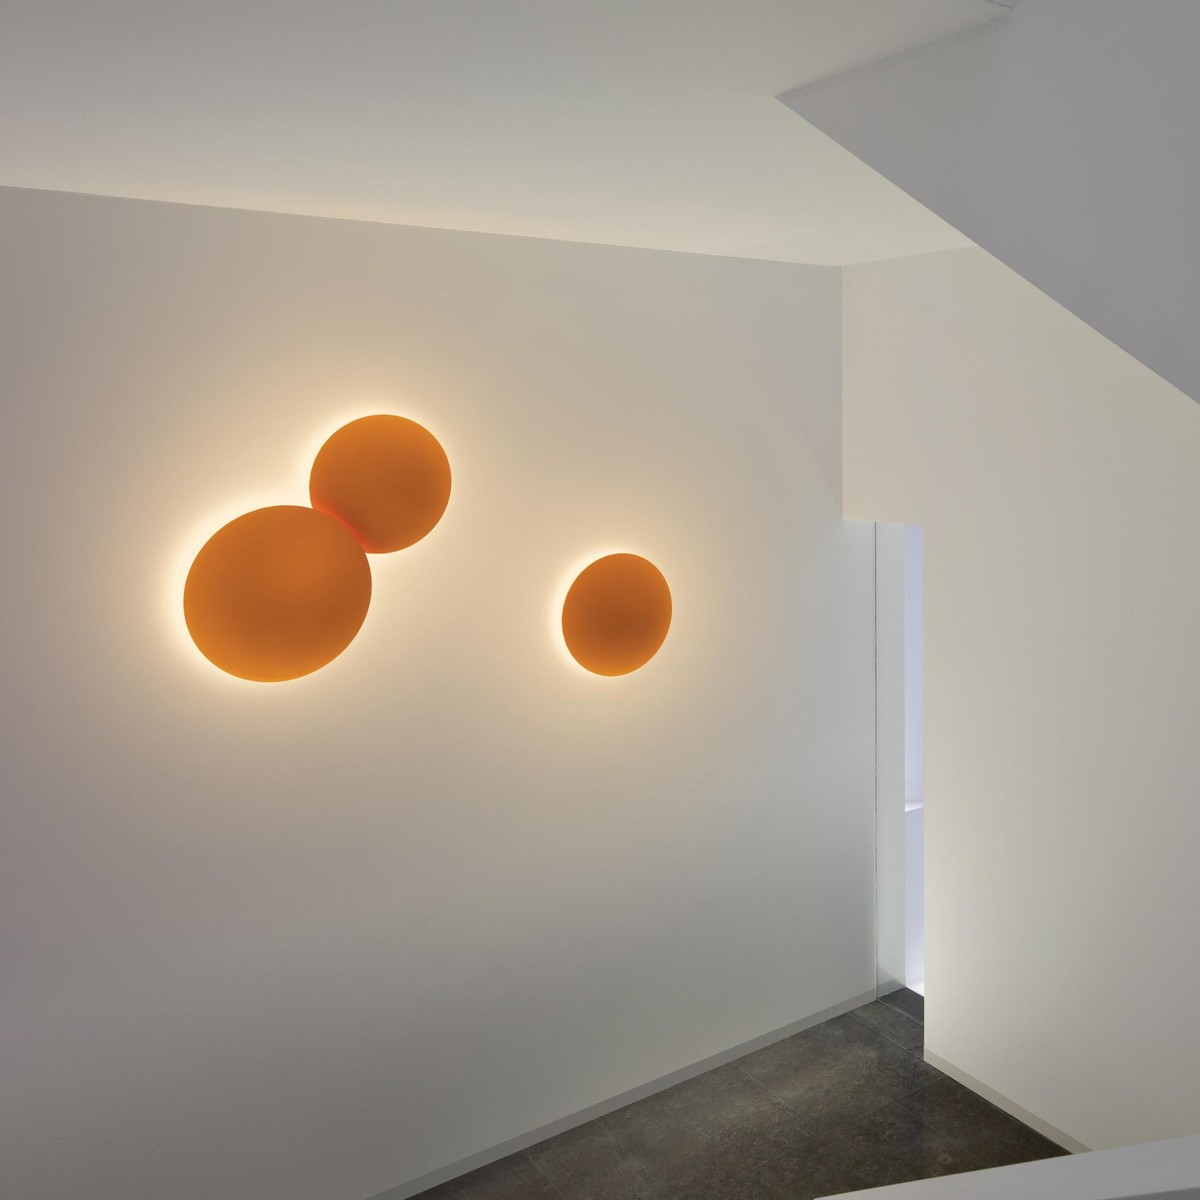 Puck Wall Art Wall Lamp  Vibia  AmbienteDirectcom